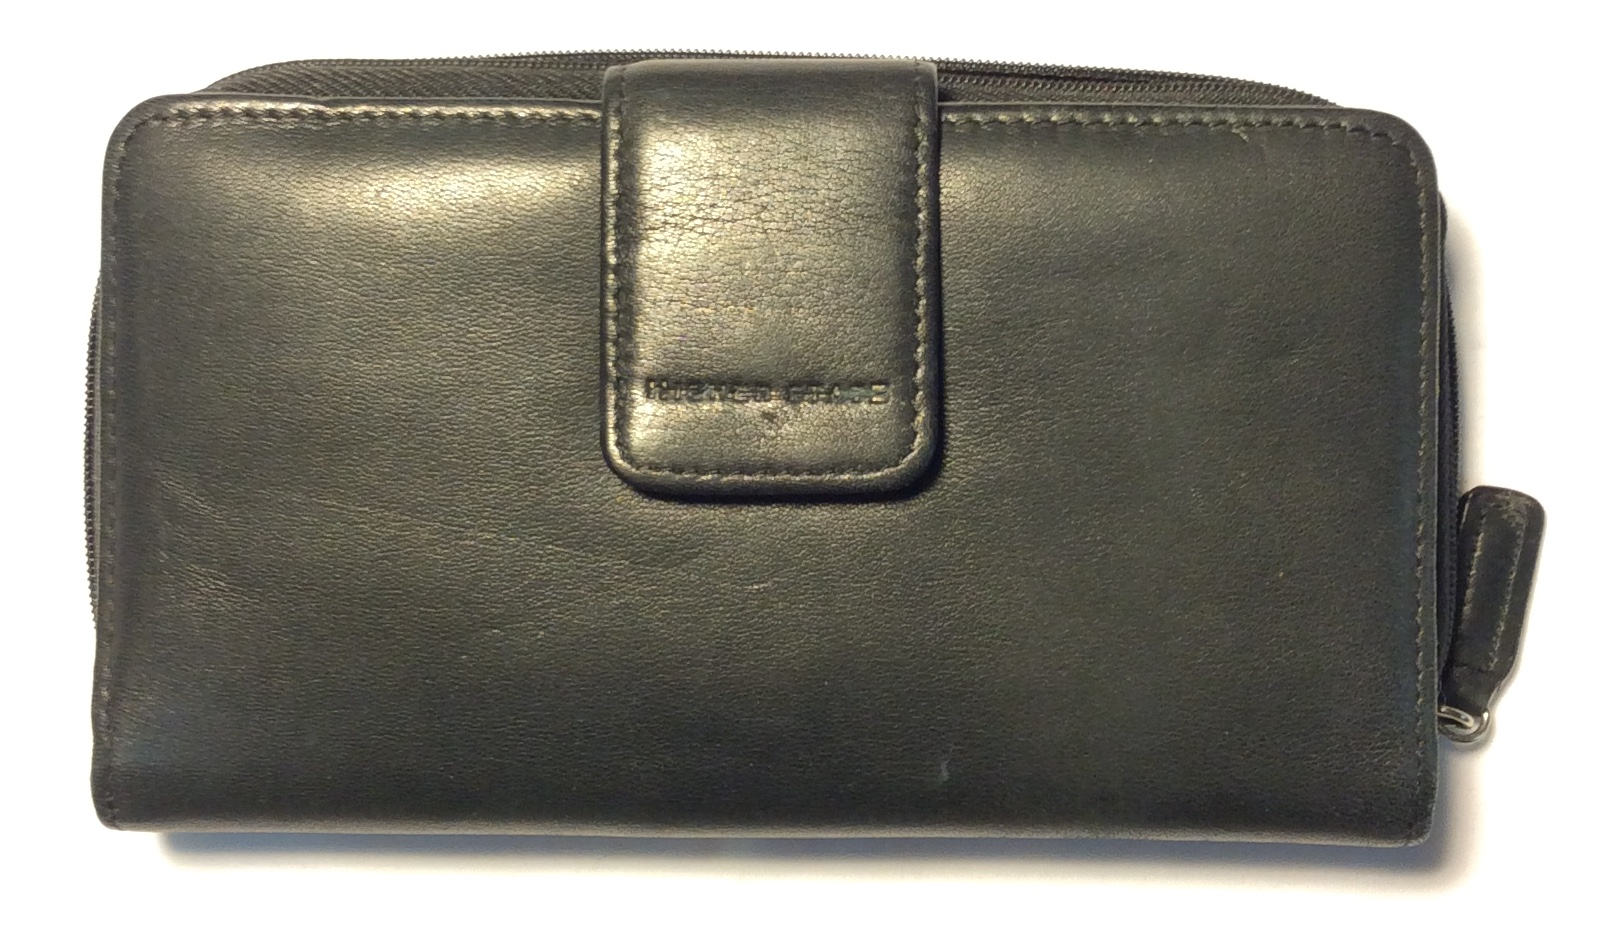 Higher State Charcoal leather large